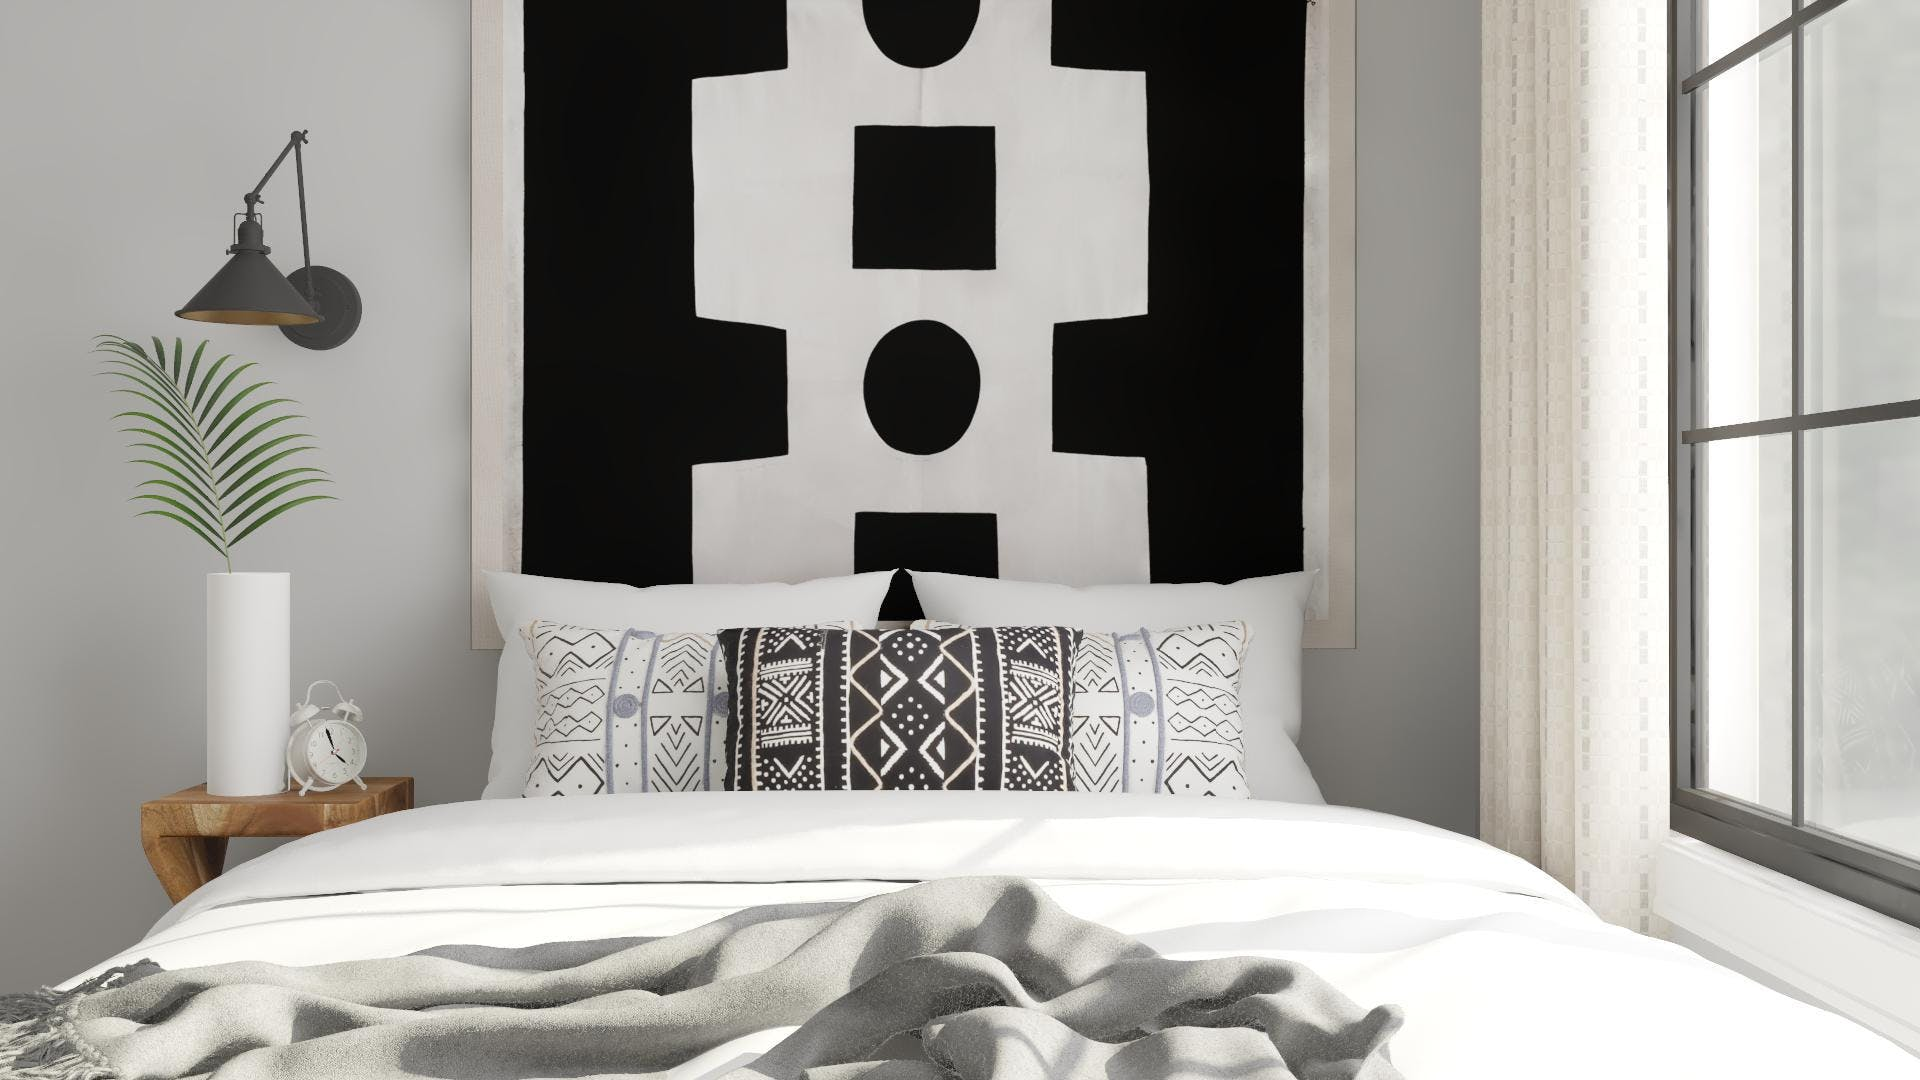 You Can Still Make a Statement in a Small Bedroom